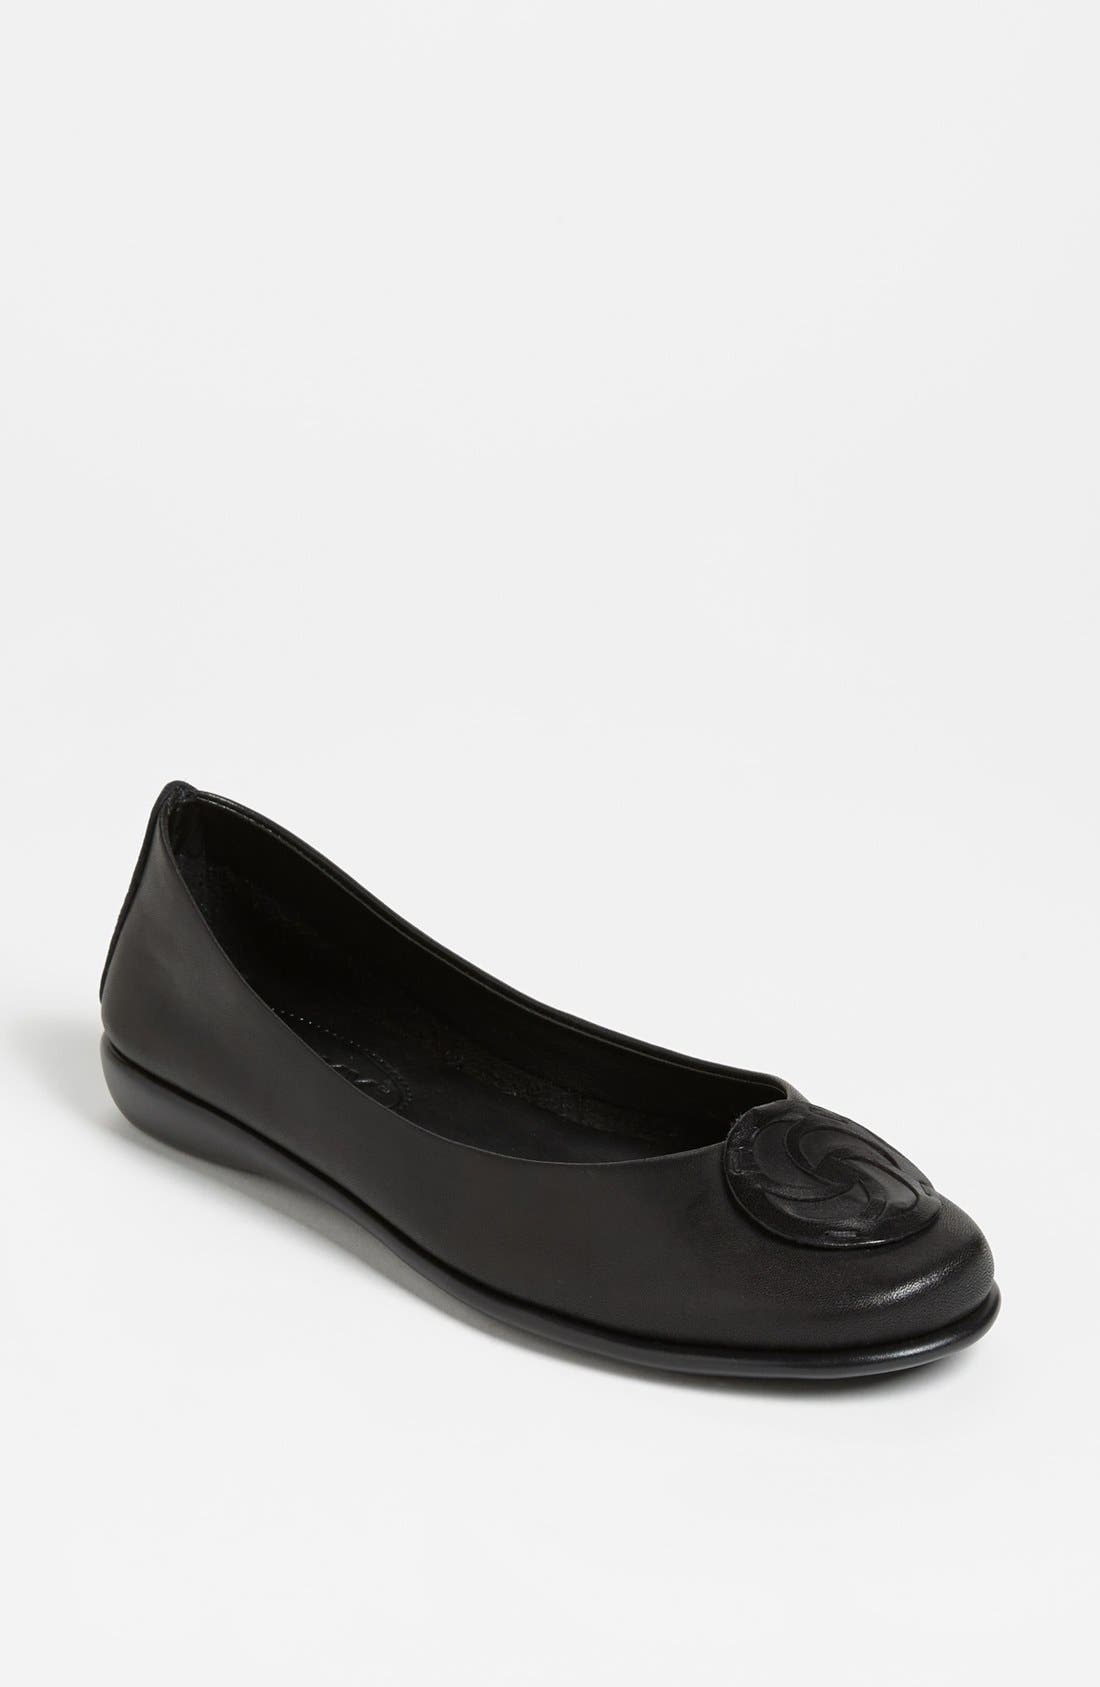 The FLEXX 'Bon Bon' Flat